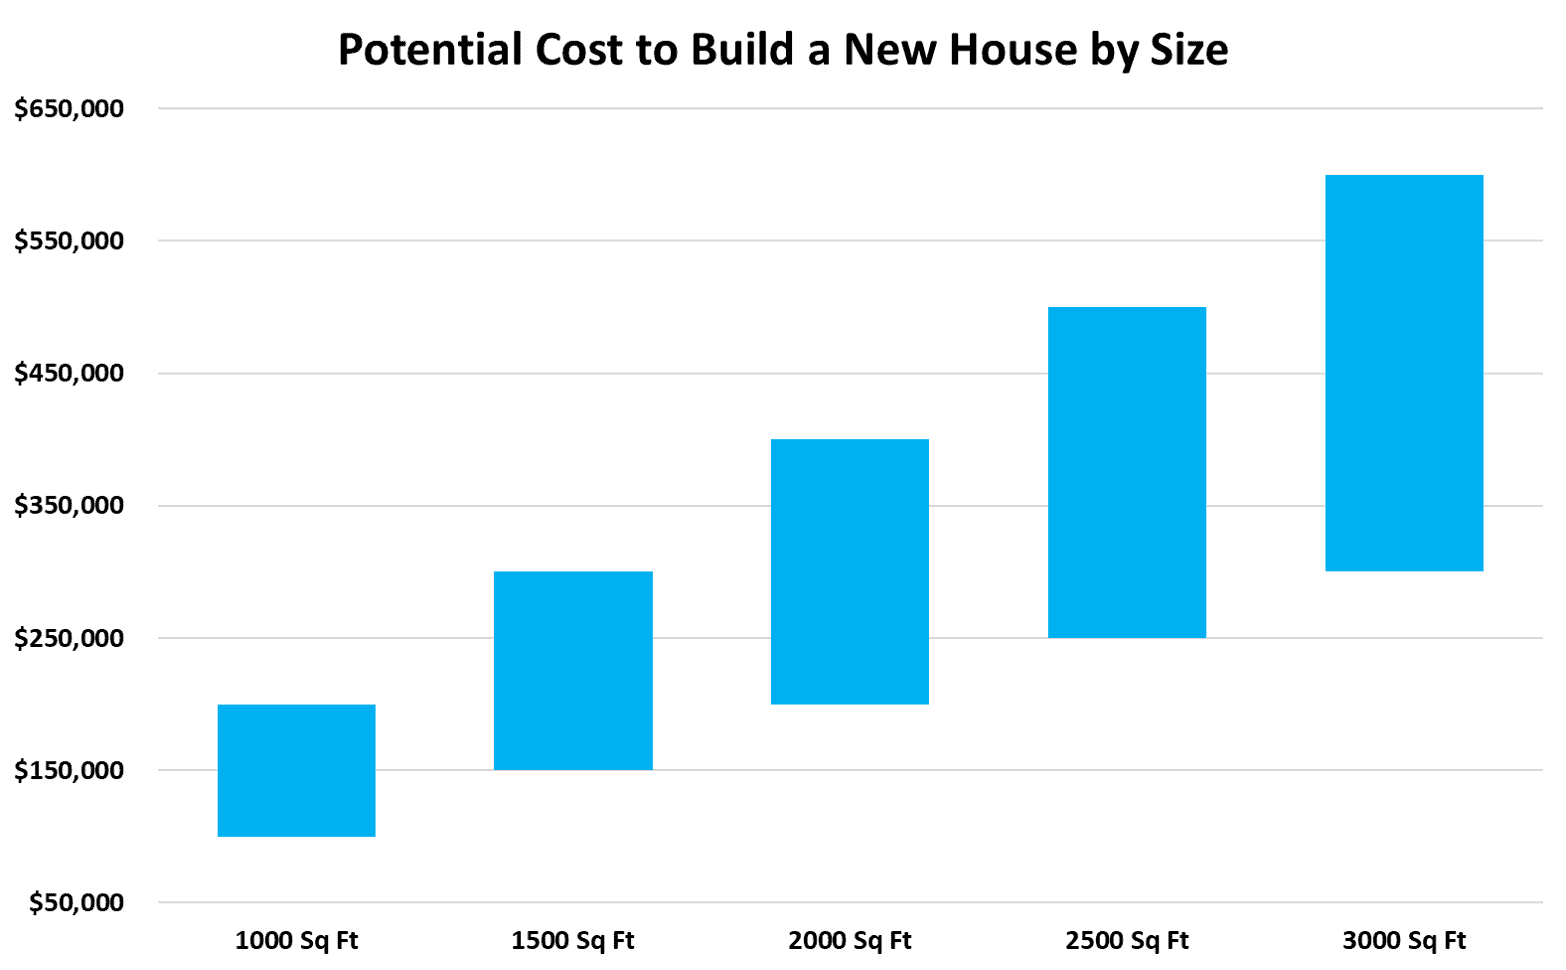 Chart displaying the potential cost to build a new single-family house by square footage size in US